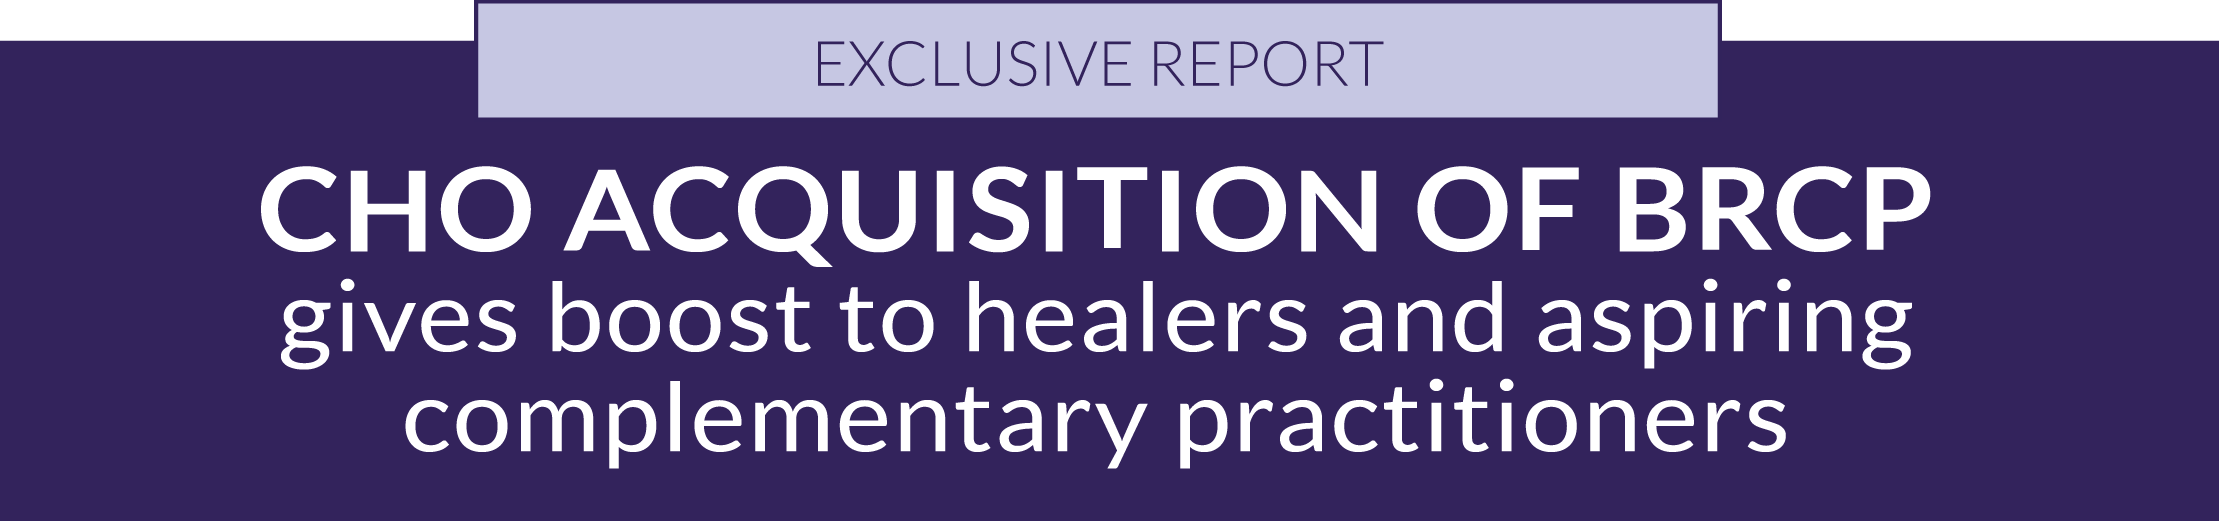 EXCLUSIVE REPORT: CHO acquisition of BRCP gives boost to healers and aspiring complementary practitioners